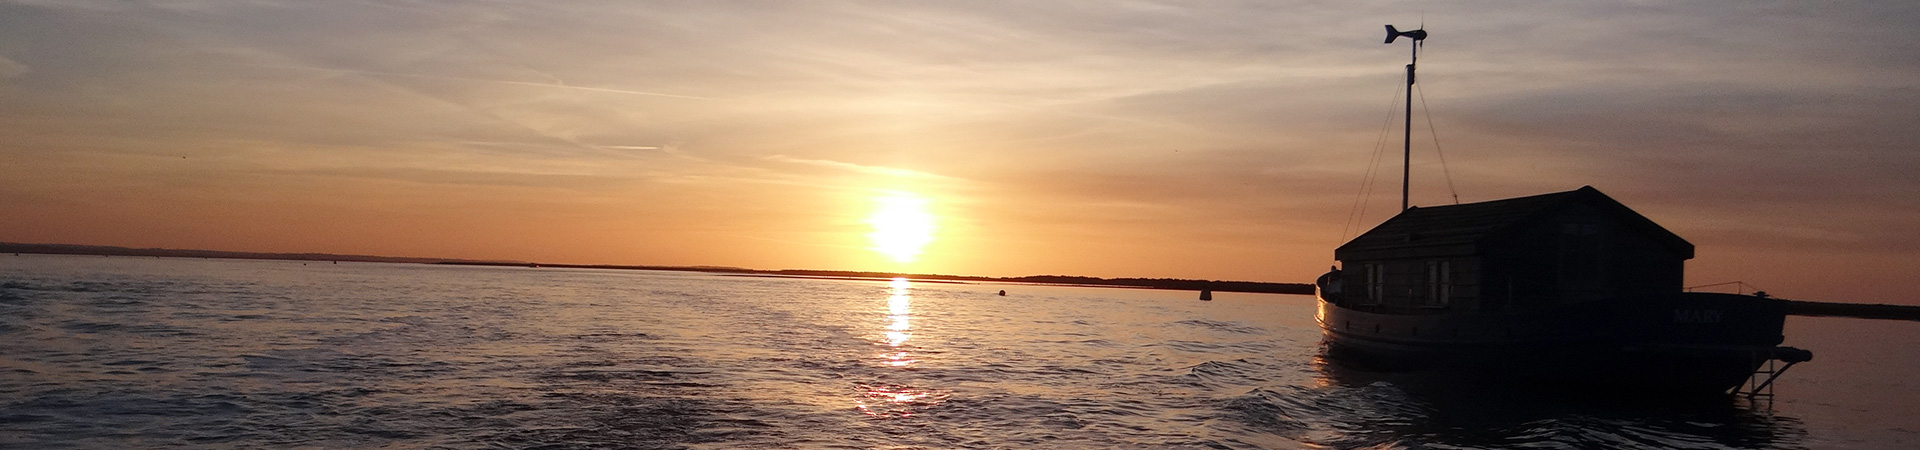 Sunset over the water at Blakaney Point